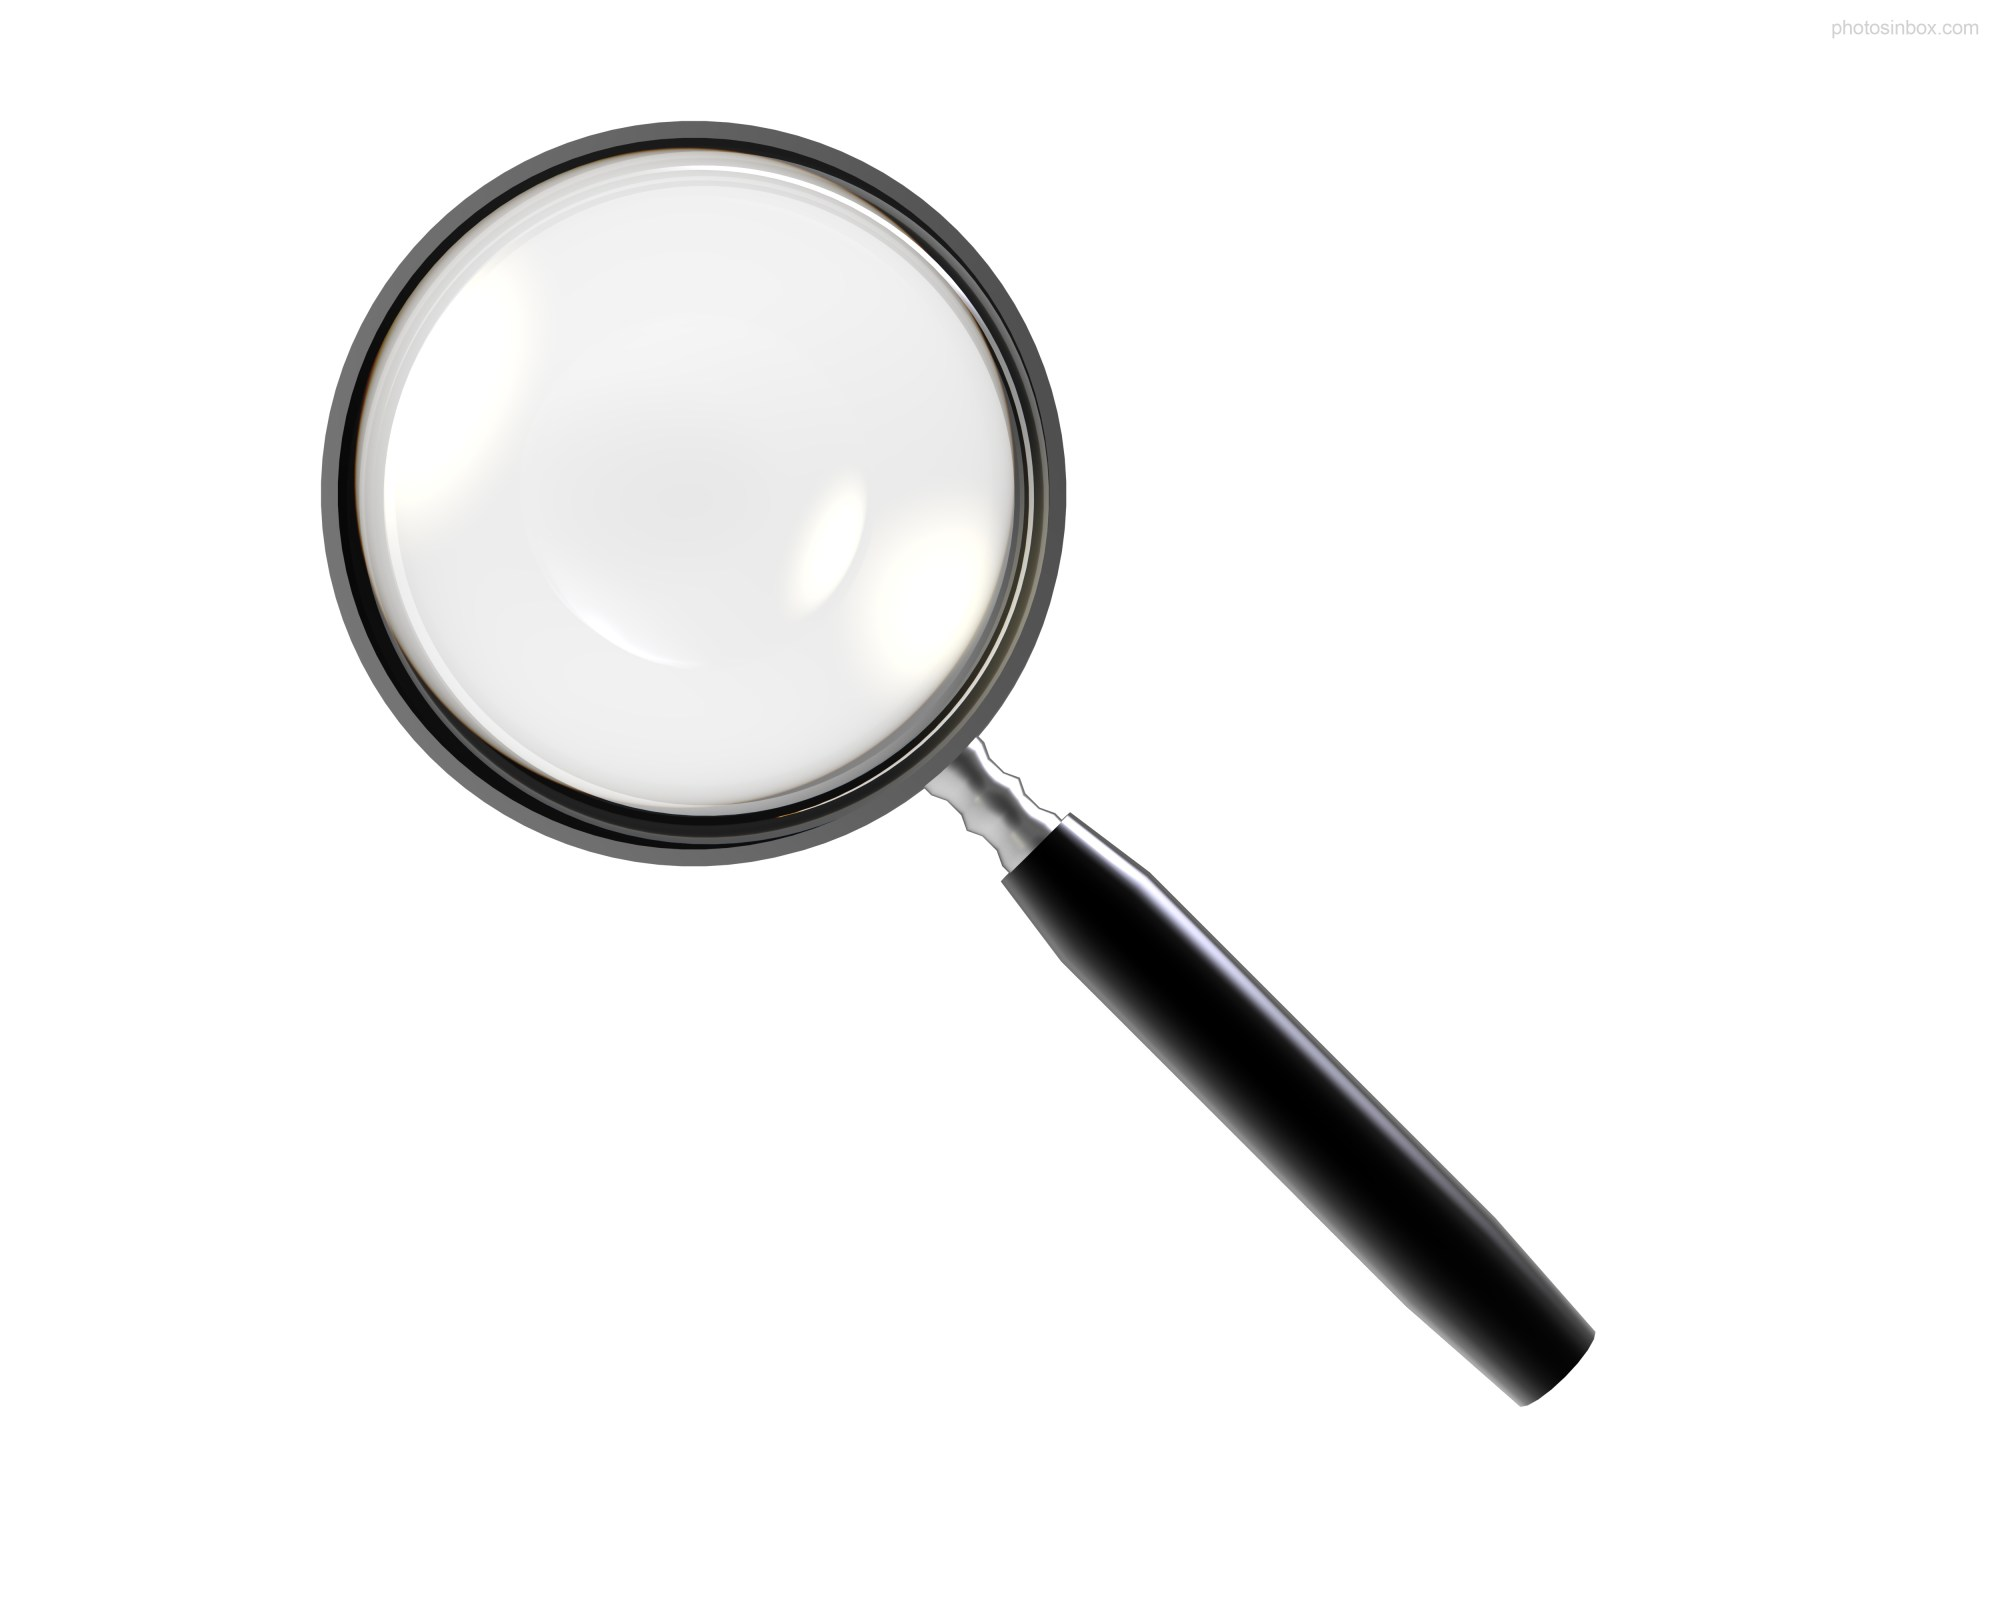 hight resolution of magnifying glass photosinbox